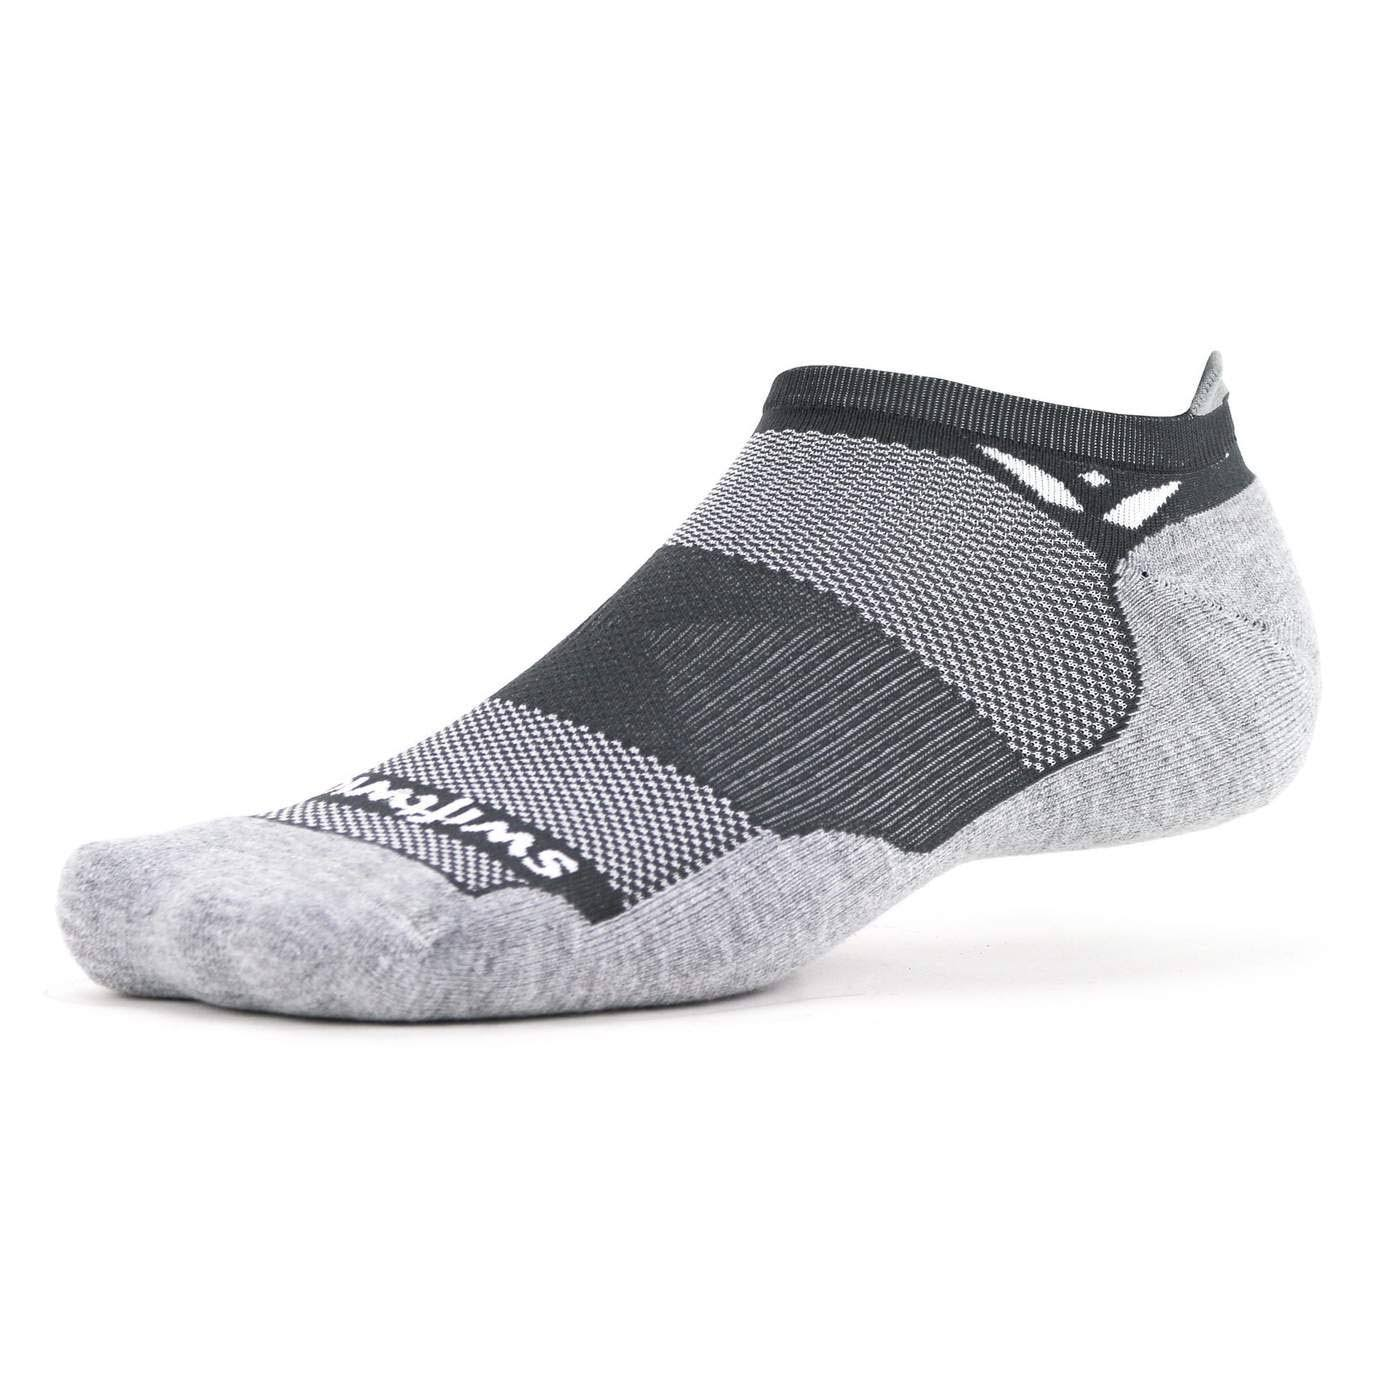 Swiftwick Maxus Zero Tab Sock (Grey) Large